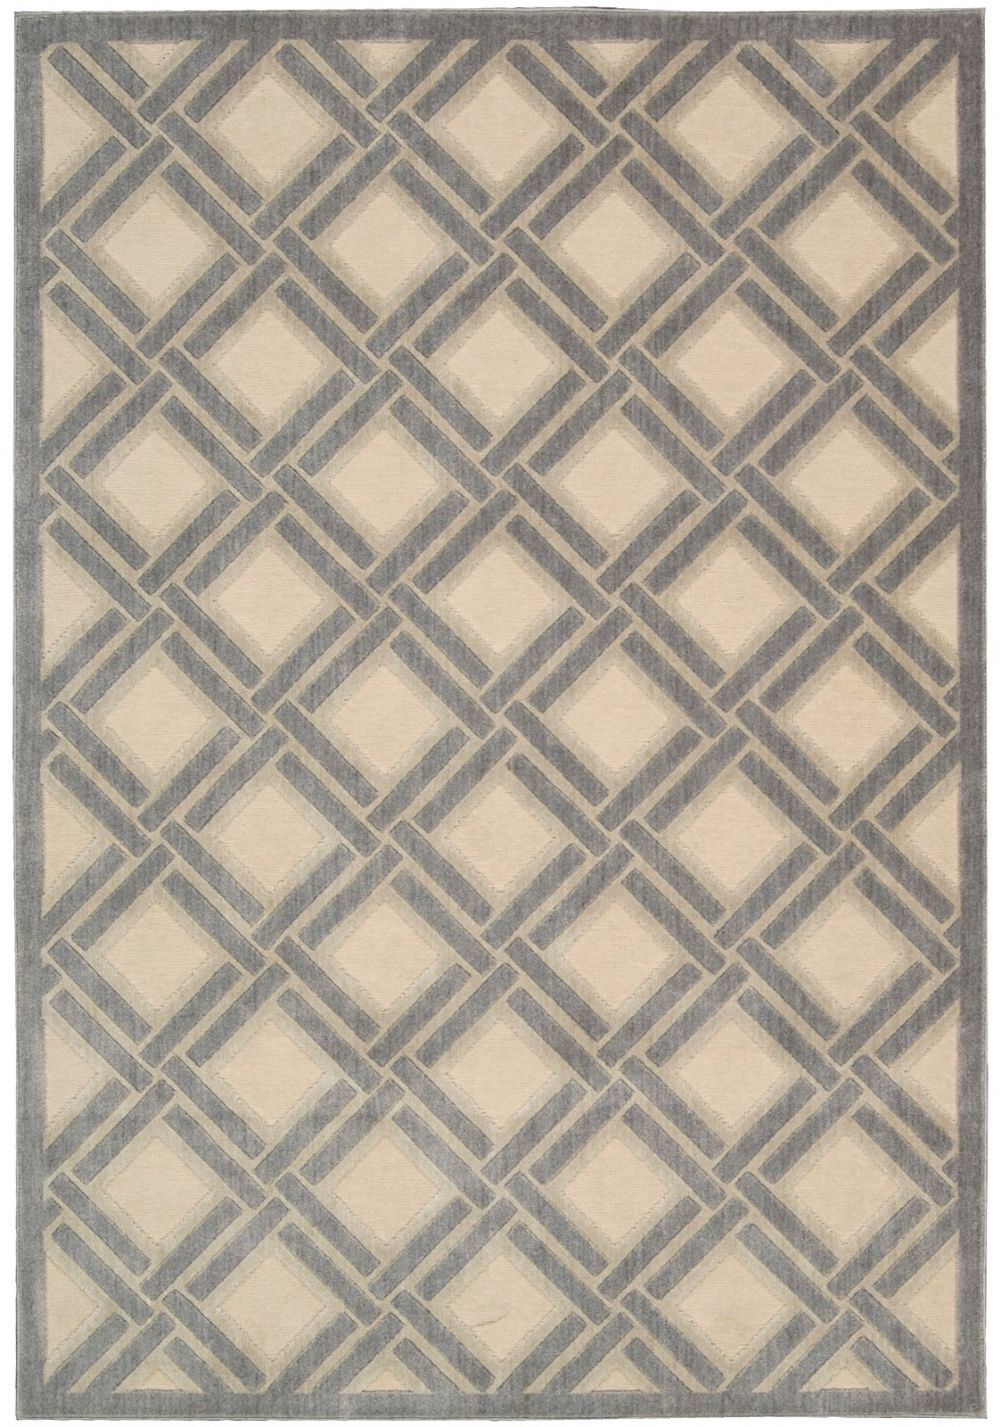 nourison graphic illusions contemporary area rug collection